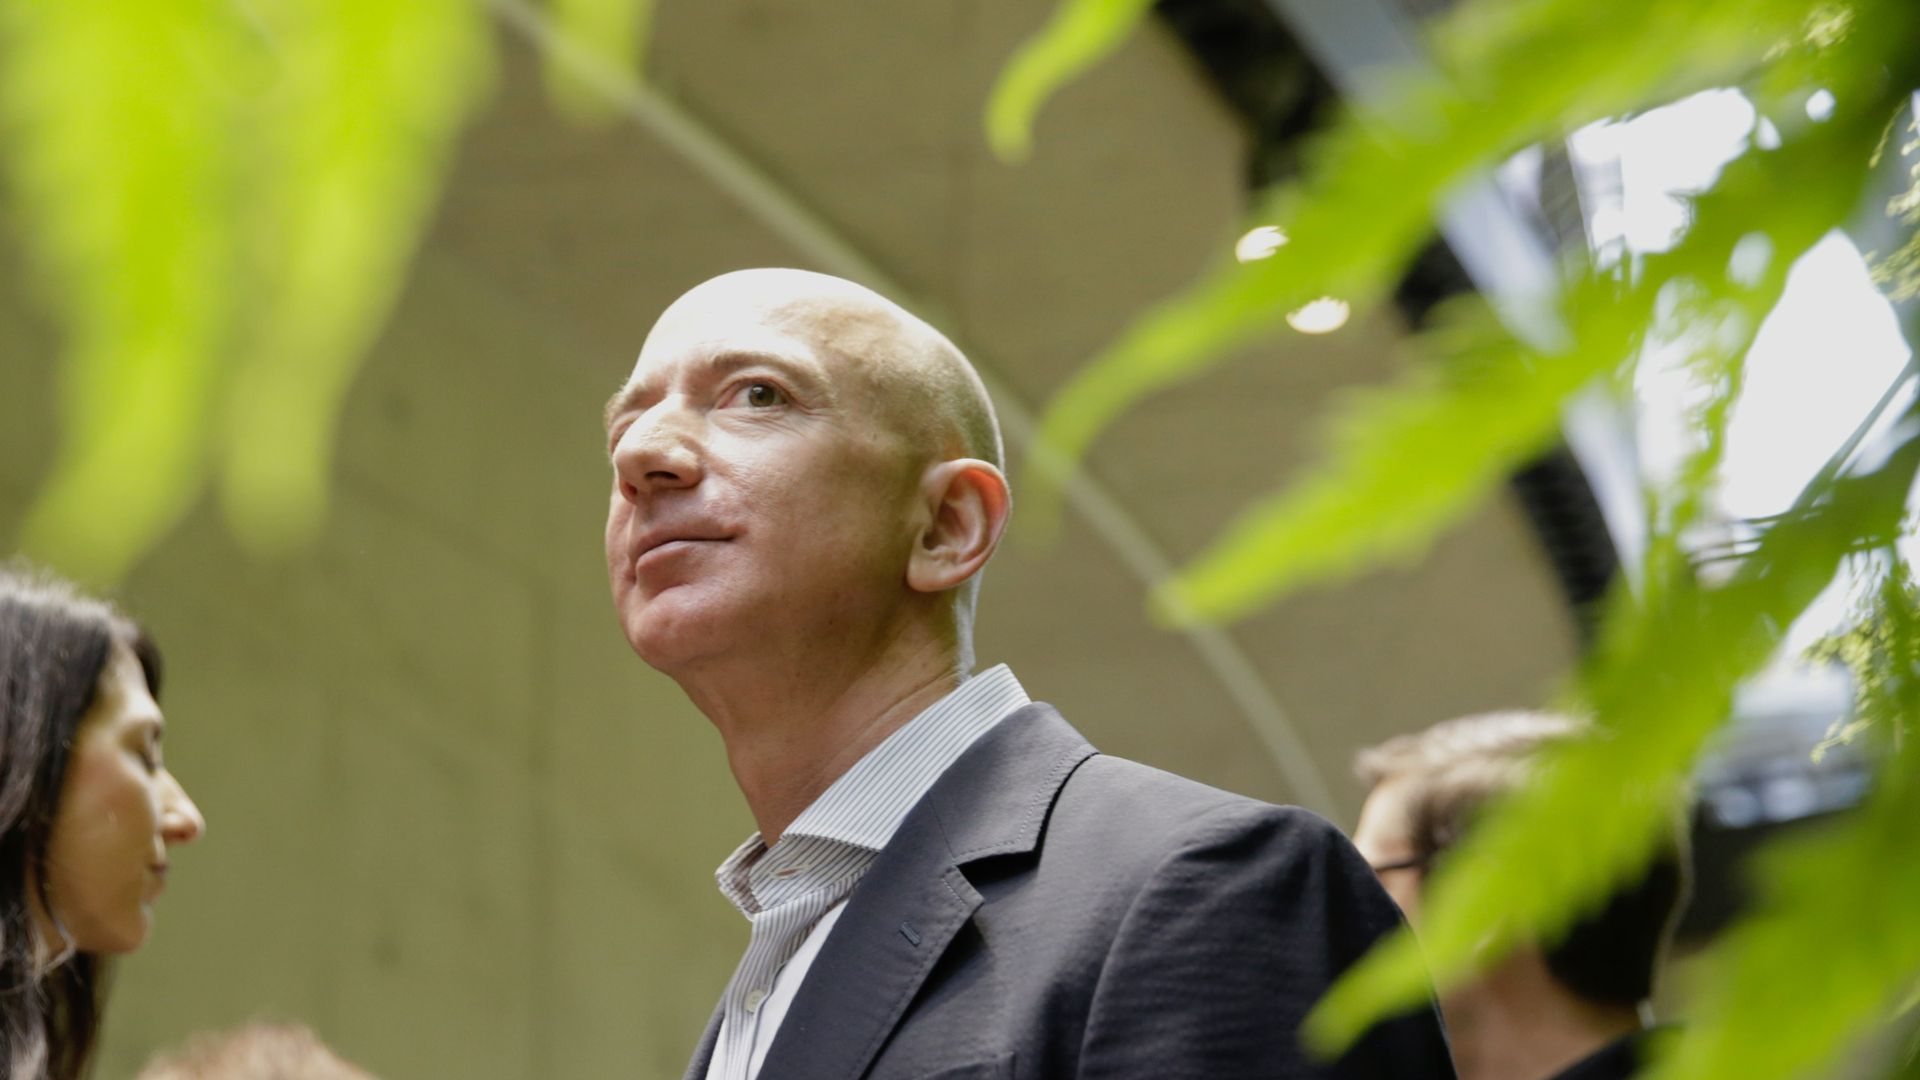 Jeff Bezos in focus in the background, with a green plant, out of focus, framing him in the foreground